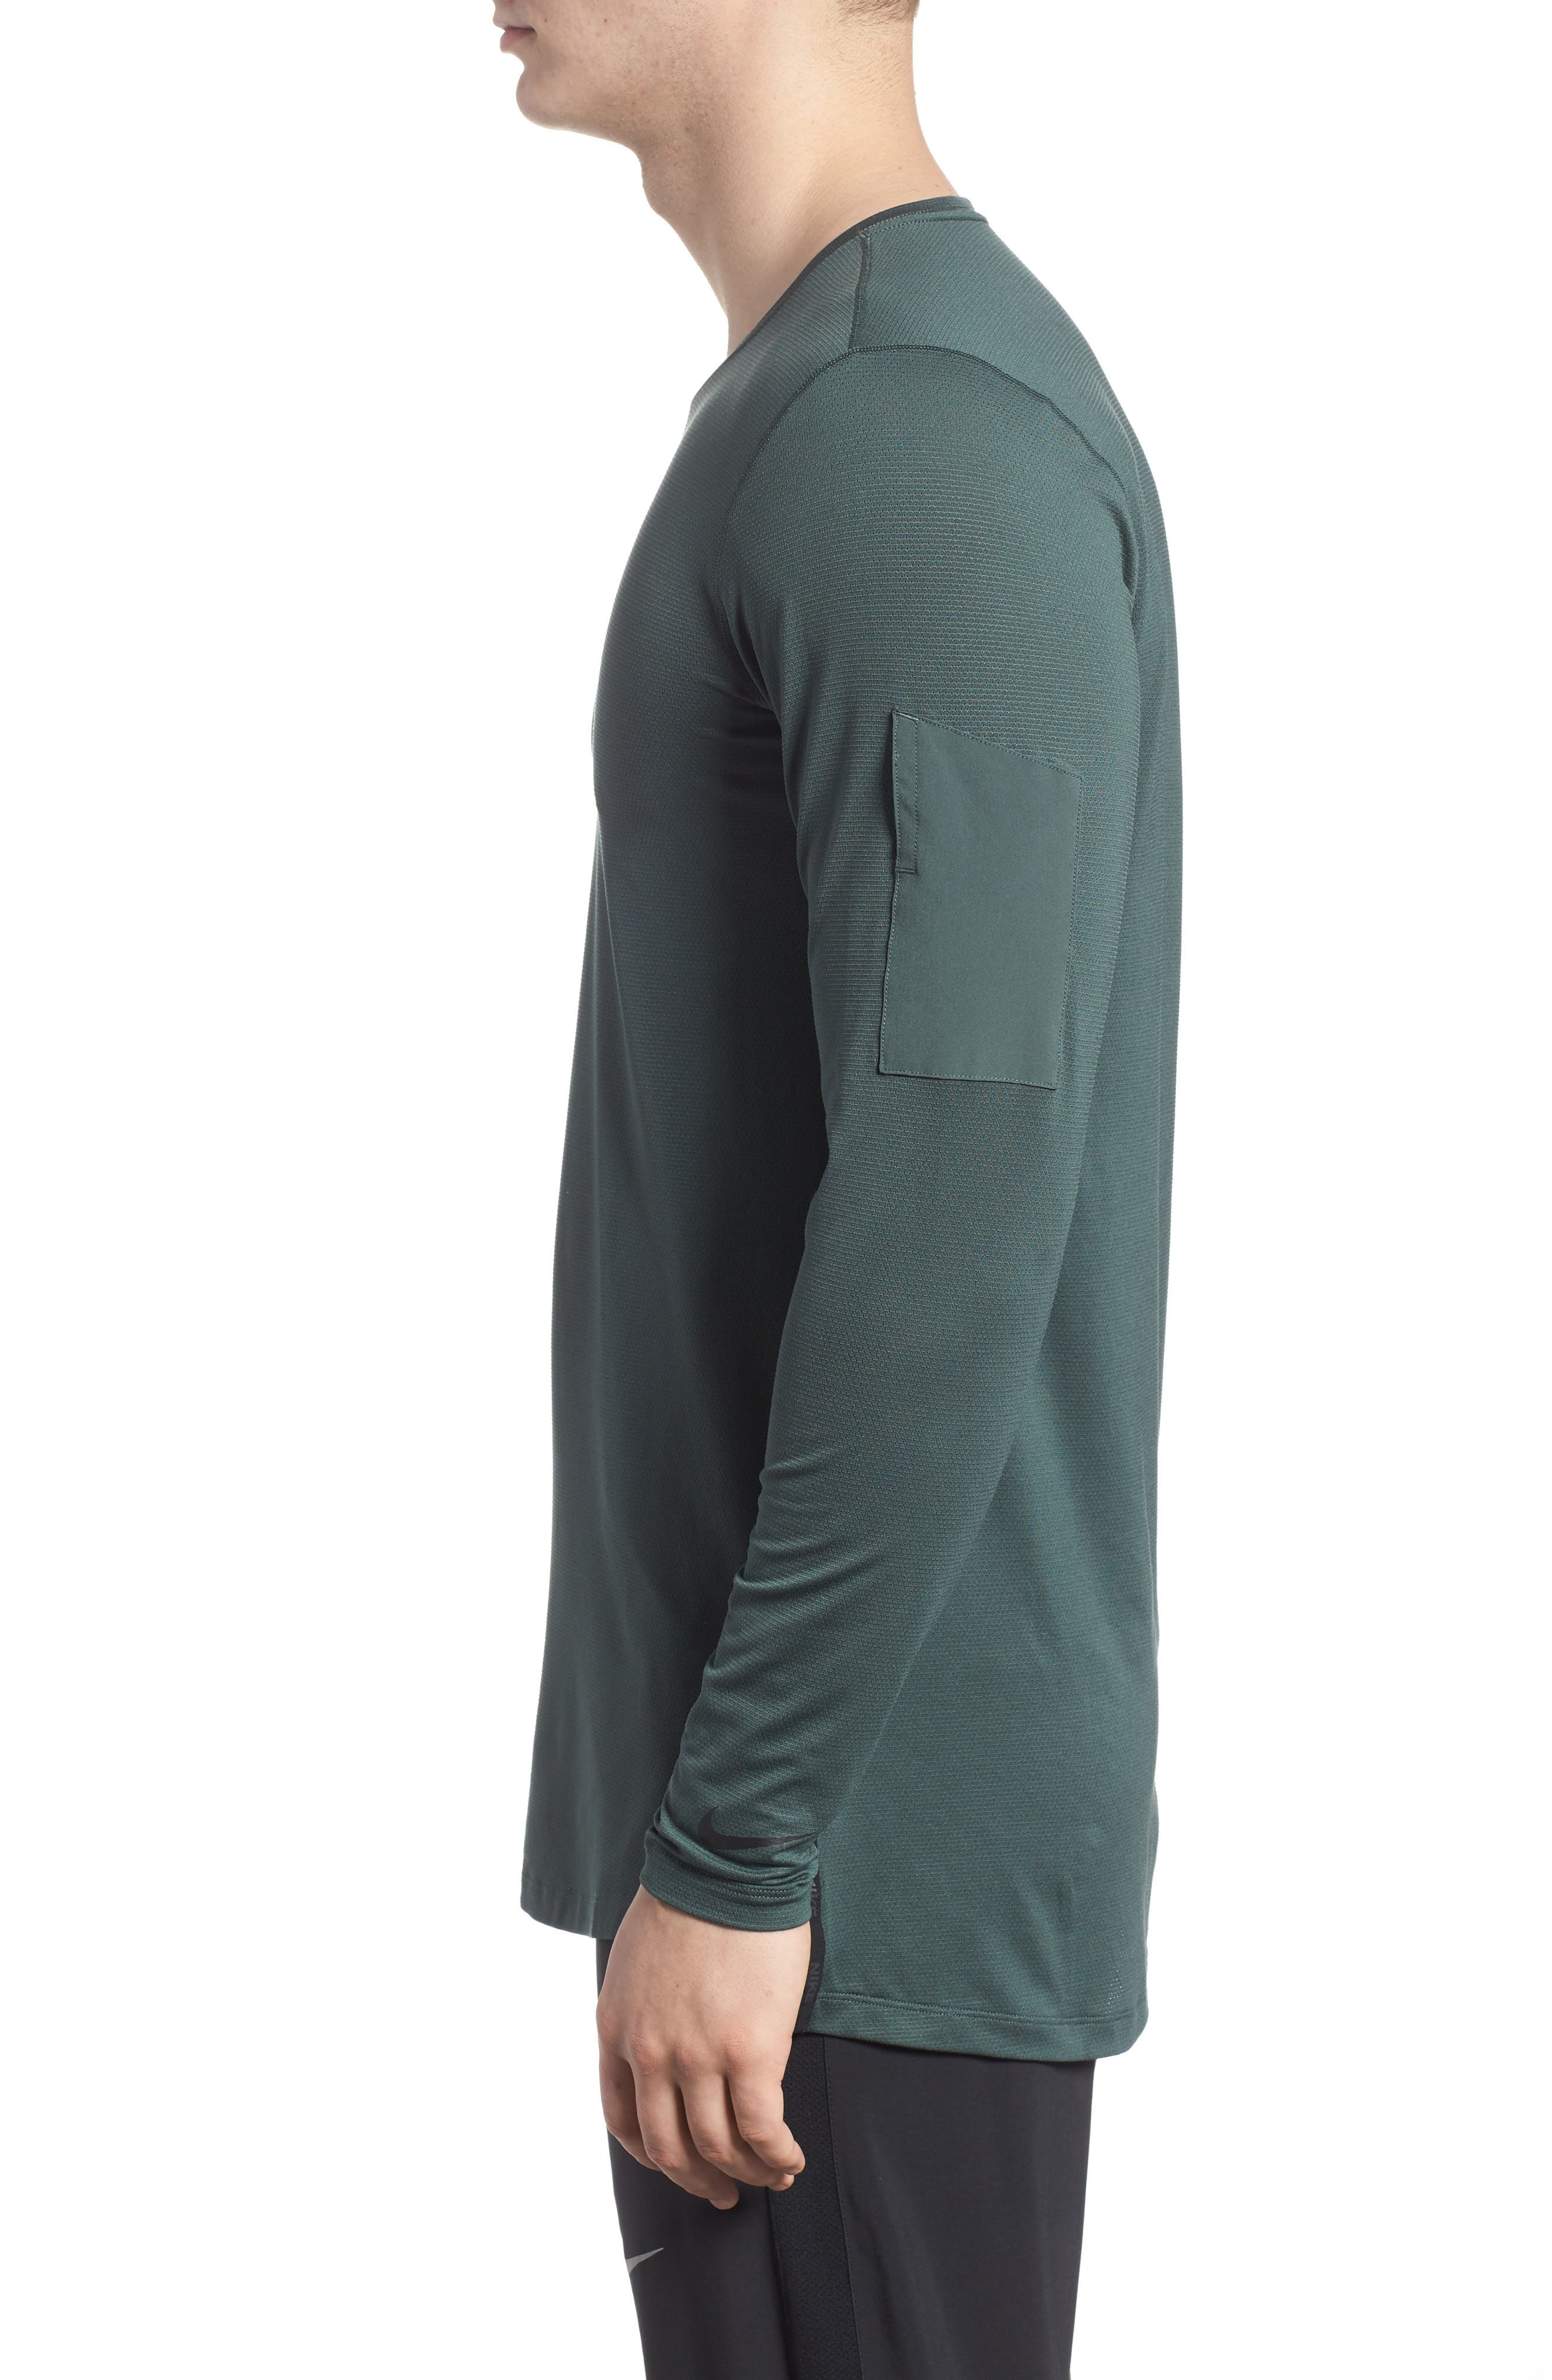 Pro Utility Fitted Training Top,                             Alternate thumbnail 3, color,                             Vintage Green/ Black